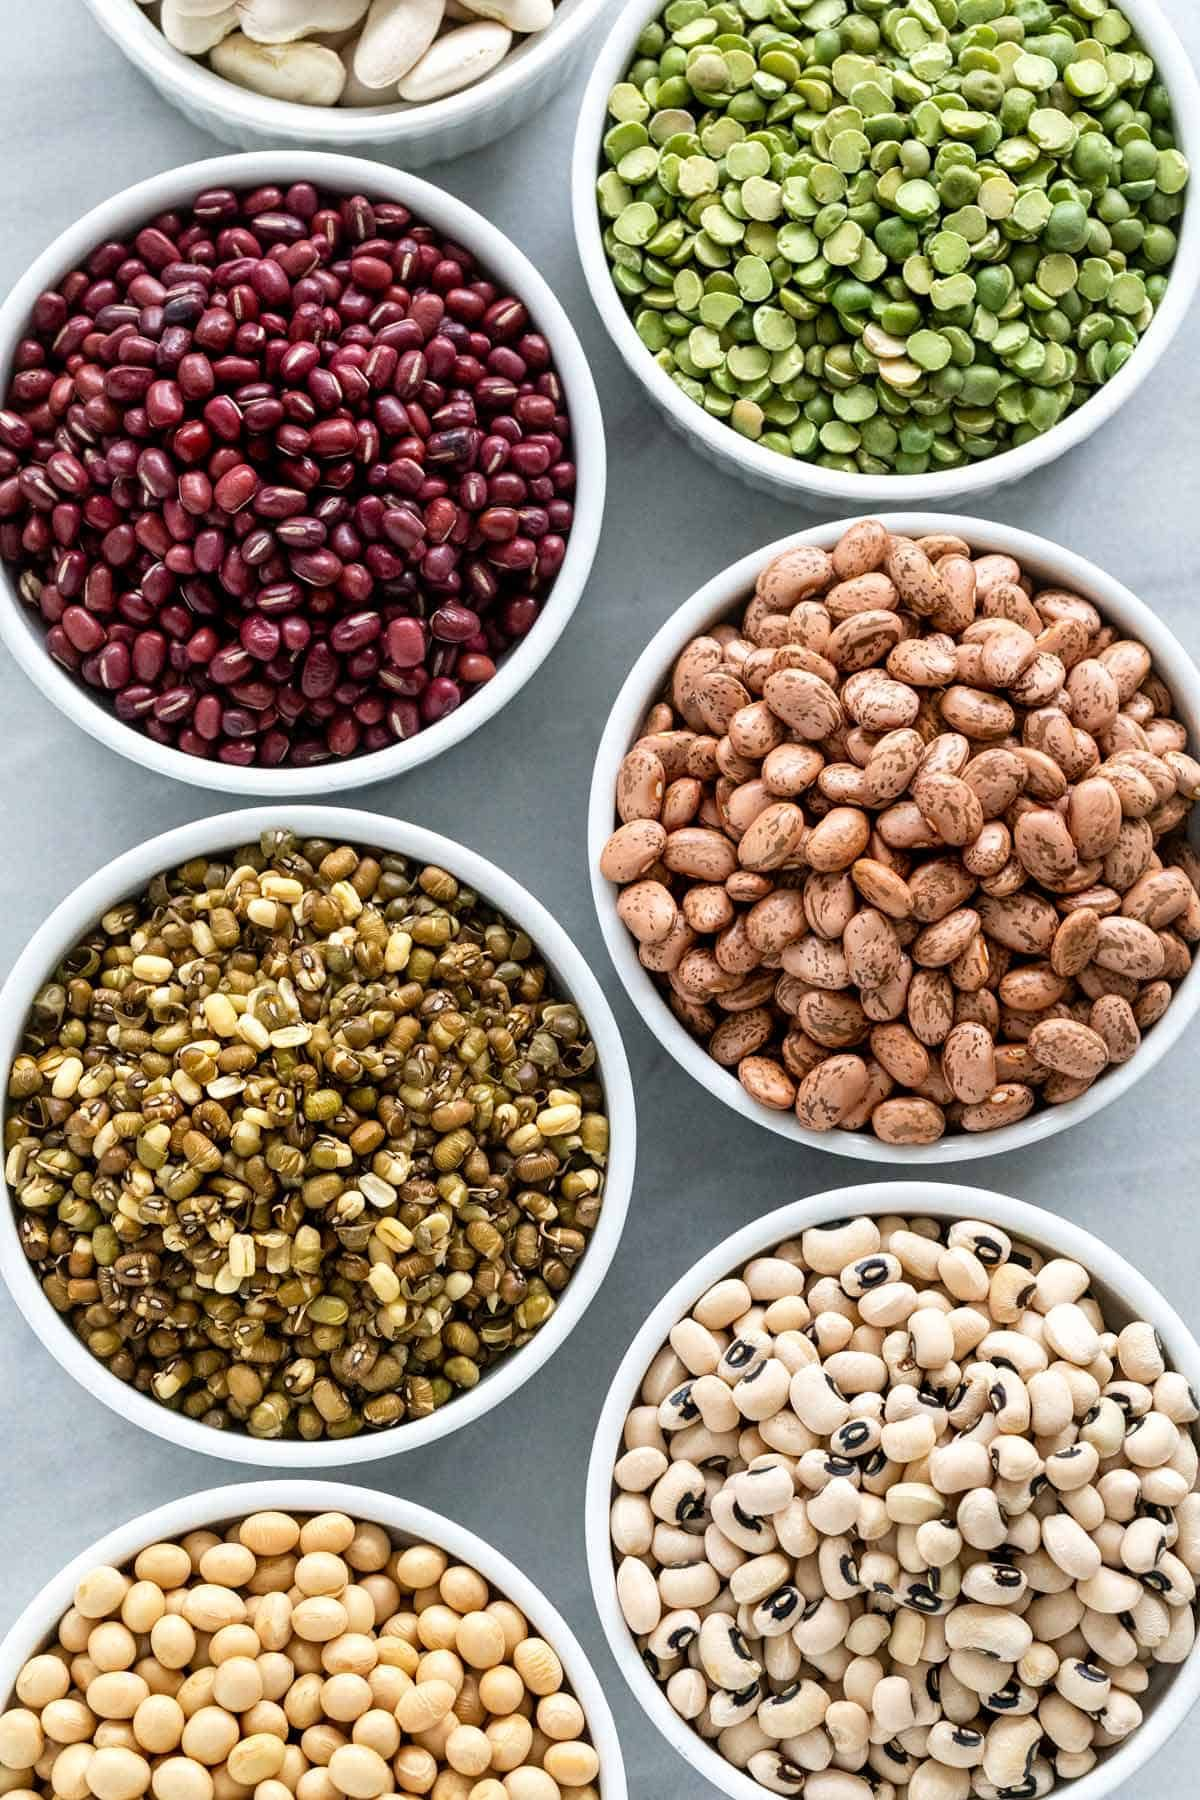 Beans are a great source of protein and one of the most commonly eaten foods in the world. Here's a list of several different types of beans available. #beans #pantry #blackbeans #navybeans #pintobeans via @foodiegavin